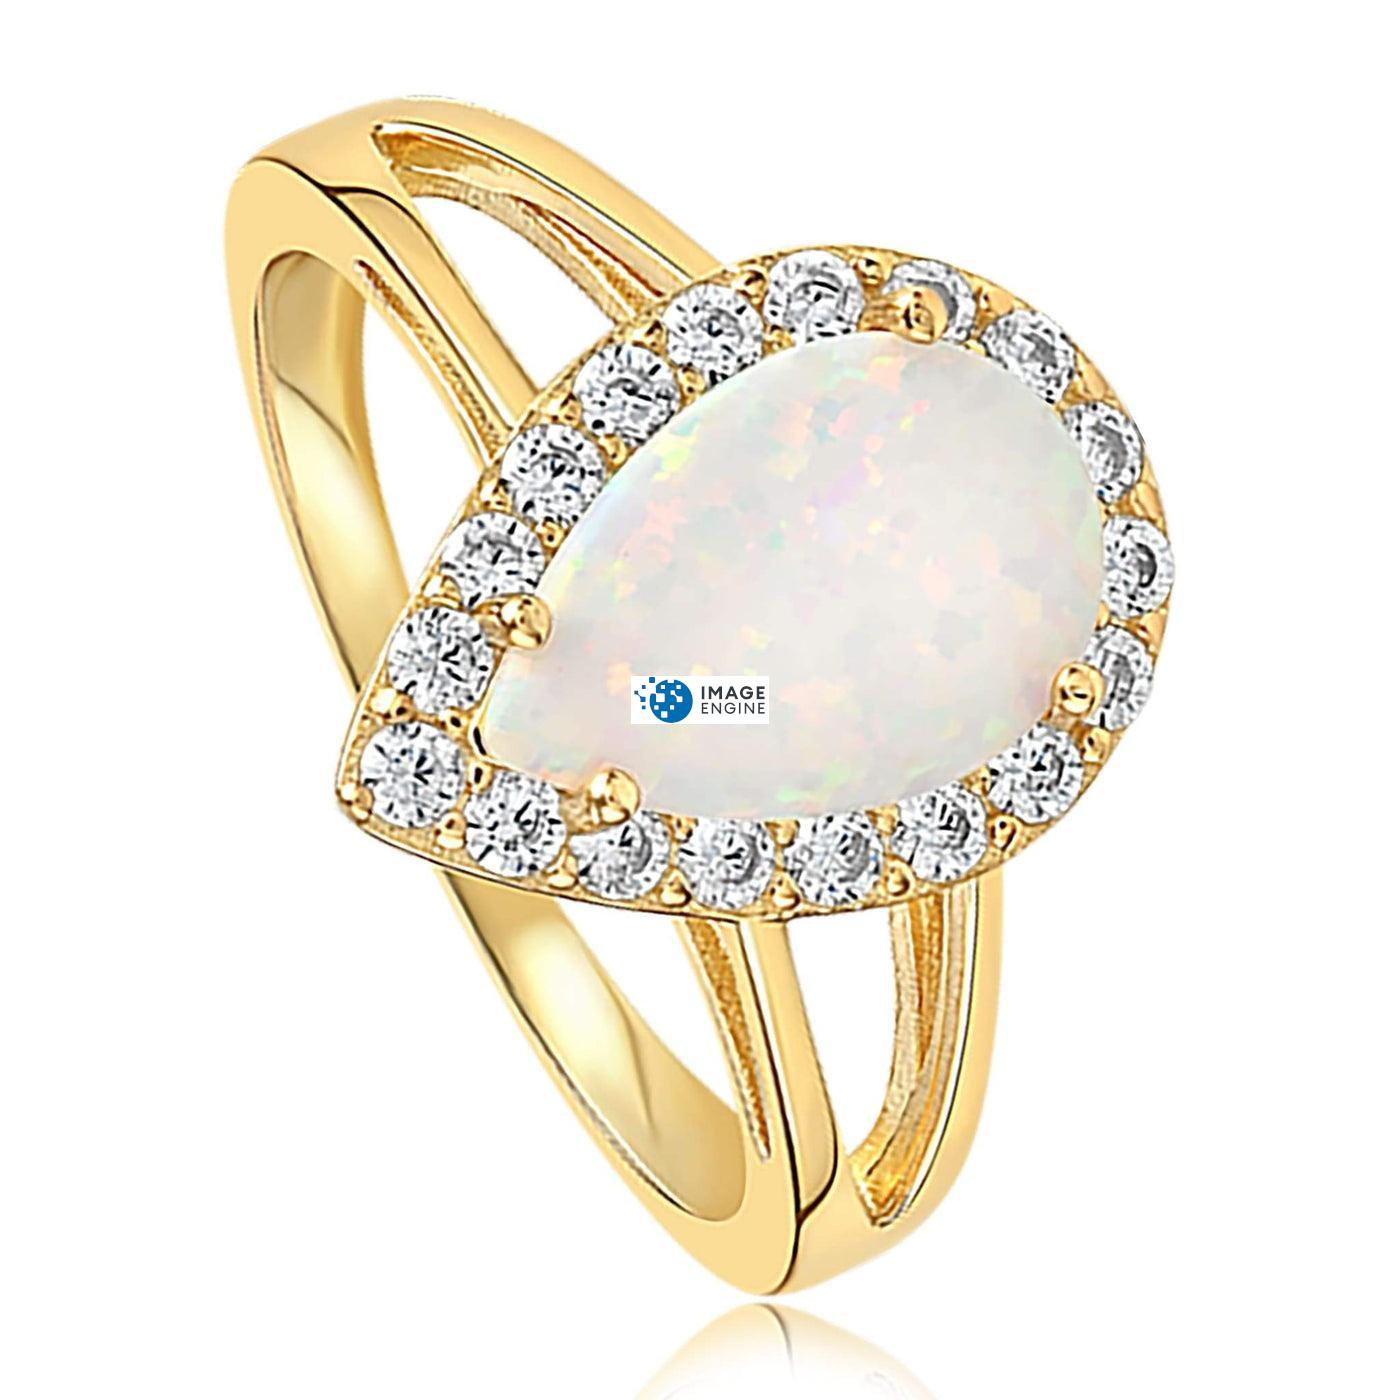 White Fire Champagne Opal Ring - Three Quarter View - 18K Yellow Gold Vermeil